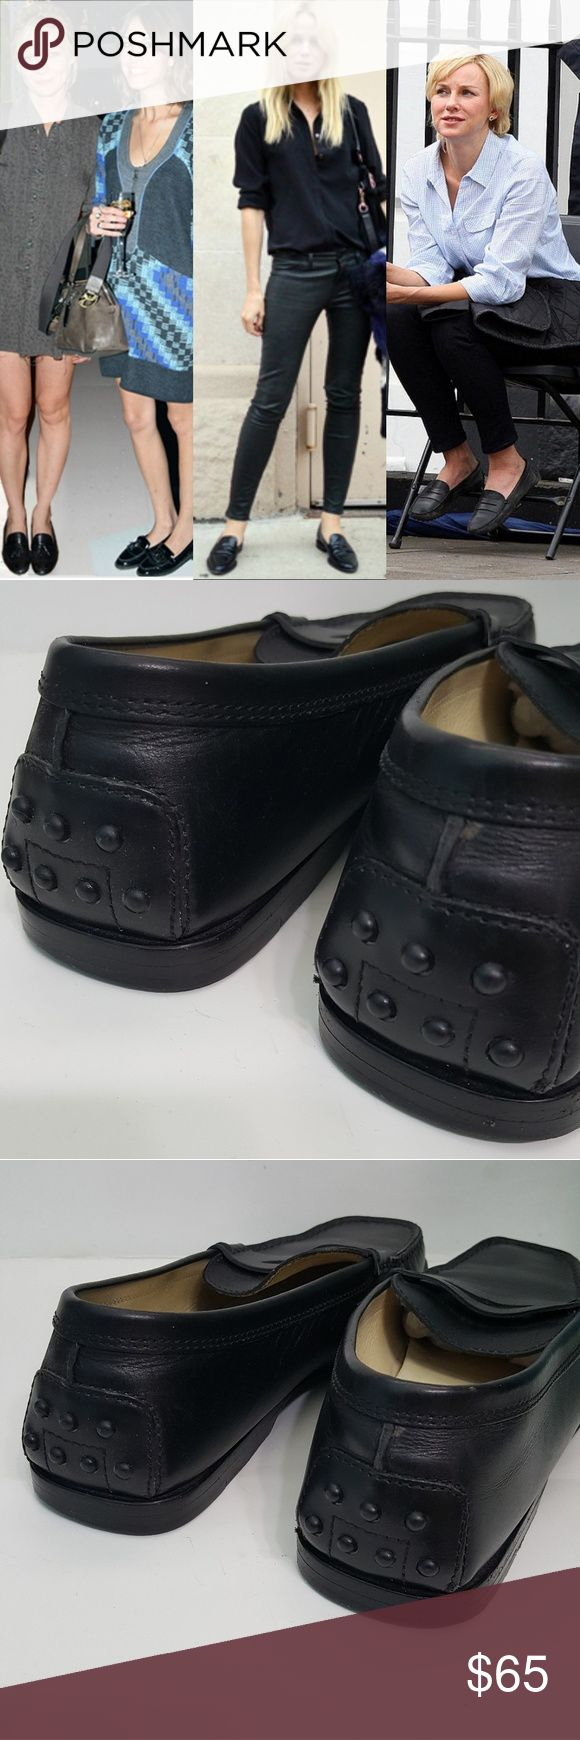 Celebrity Staple Tod's Classic Driving Loafers They last a lifetime. Tod's driving shoe. All leather. All they need is to be polished. Tod's Shoes Flats & Loafers